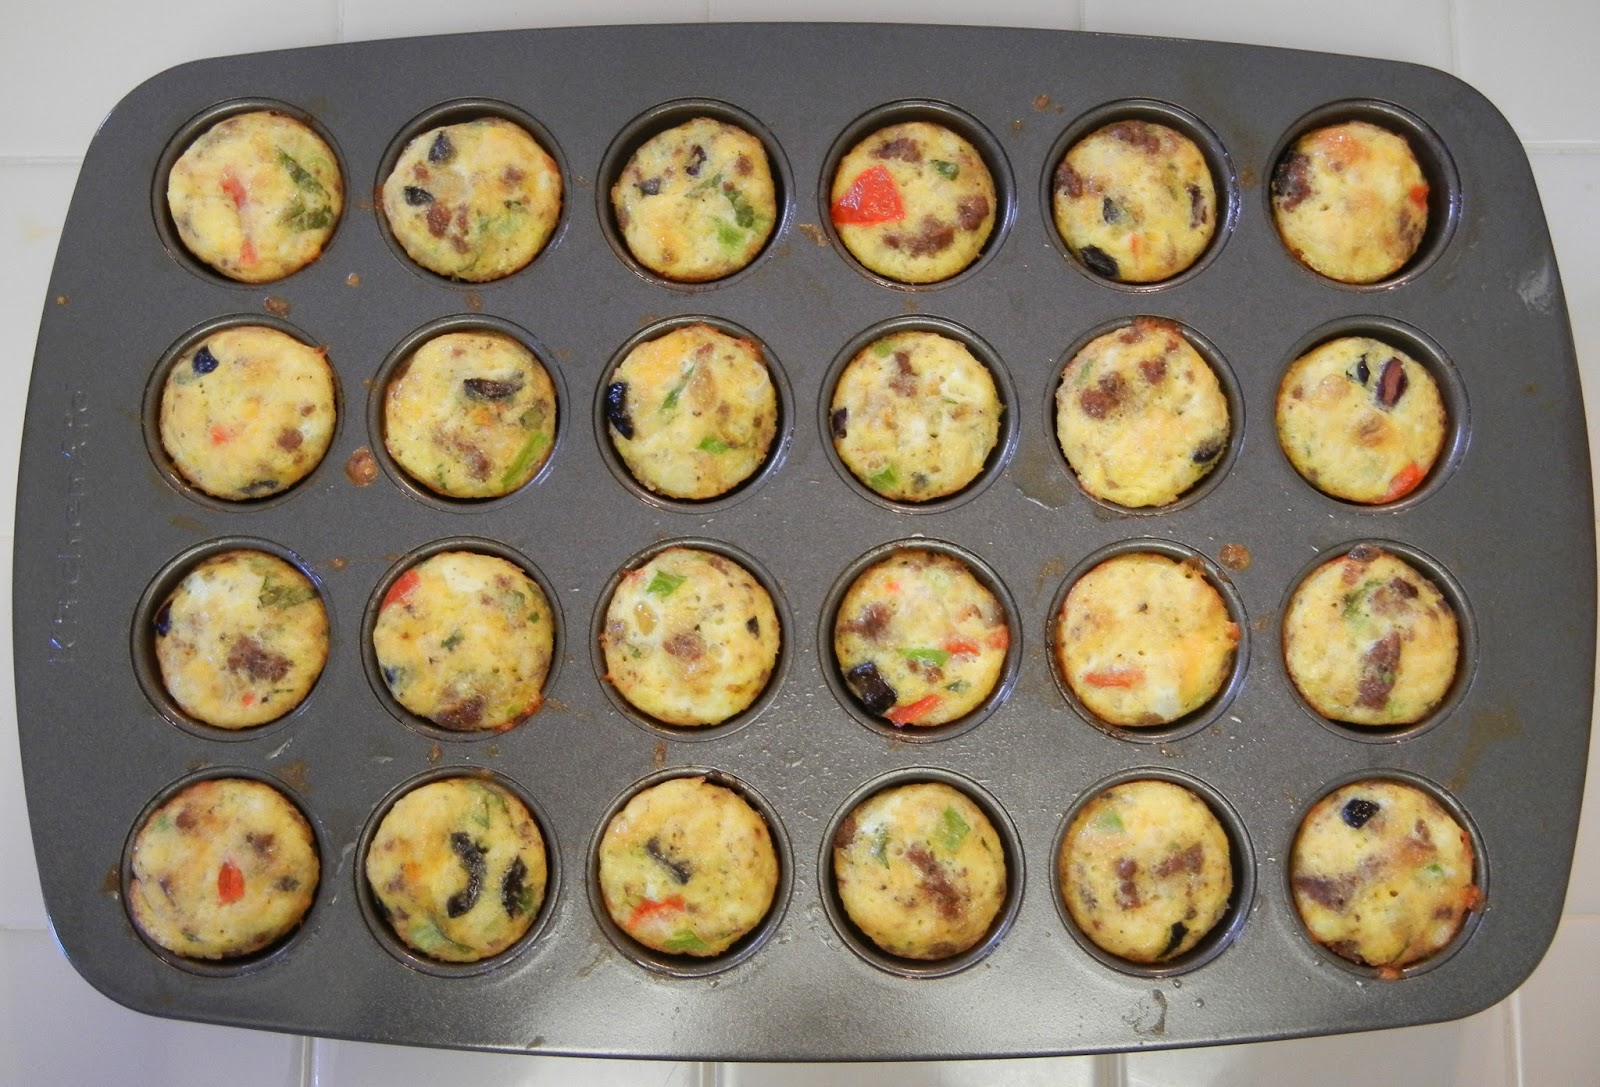 Eggface+Taco+Bites+Crustless+Quiche+Low+Carb+3 Weight Loss Recipes Dinner and the Leftovers